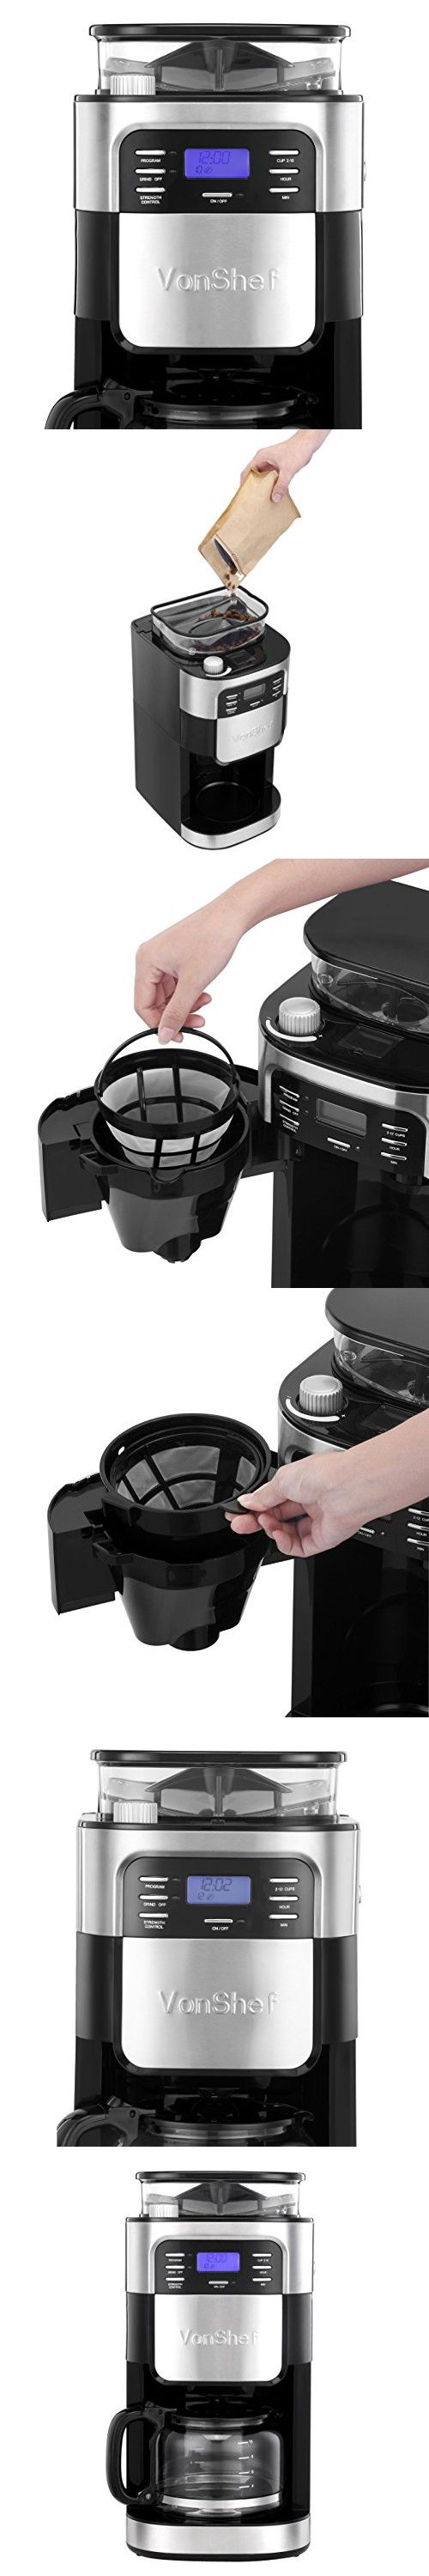 VonShef 900W 10 Cup Digital Filter Coffee Maker with Built-In Grinder and Reusable Filter